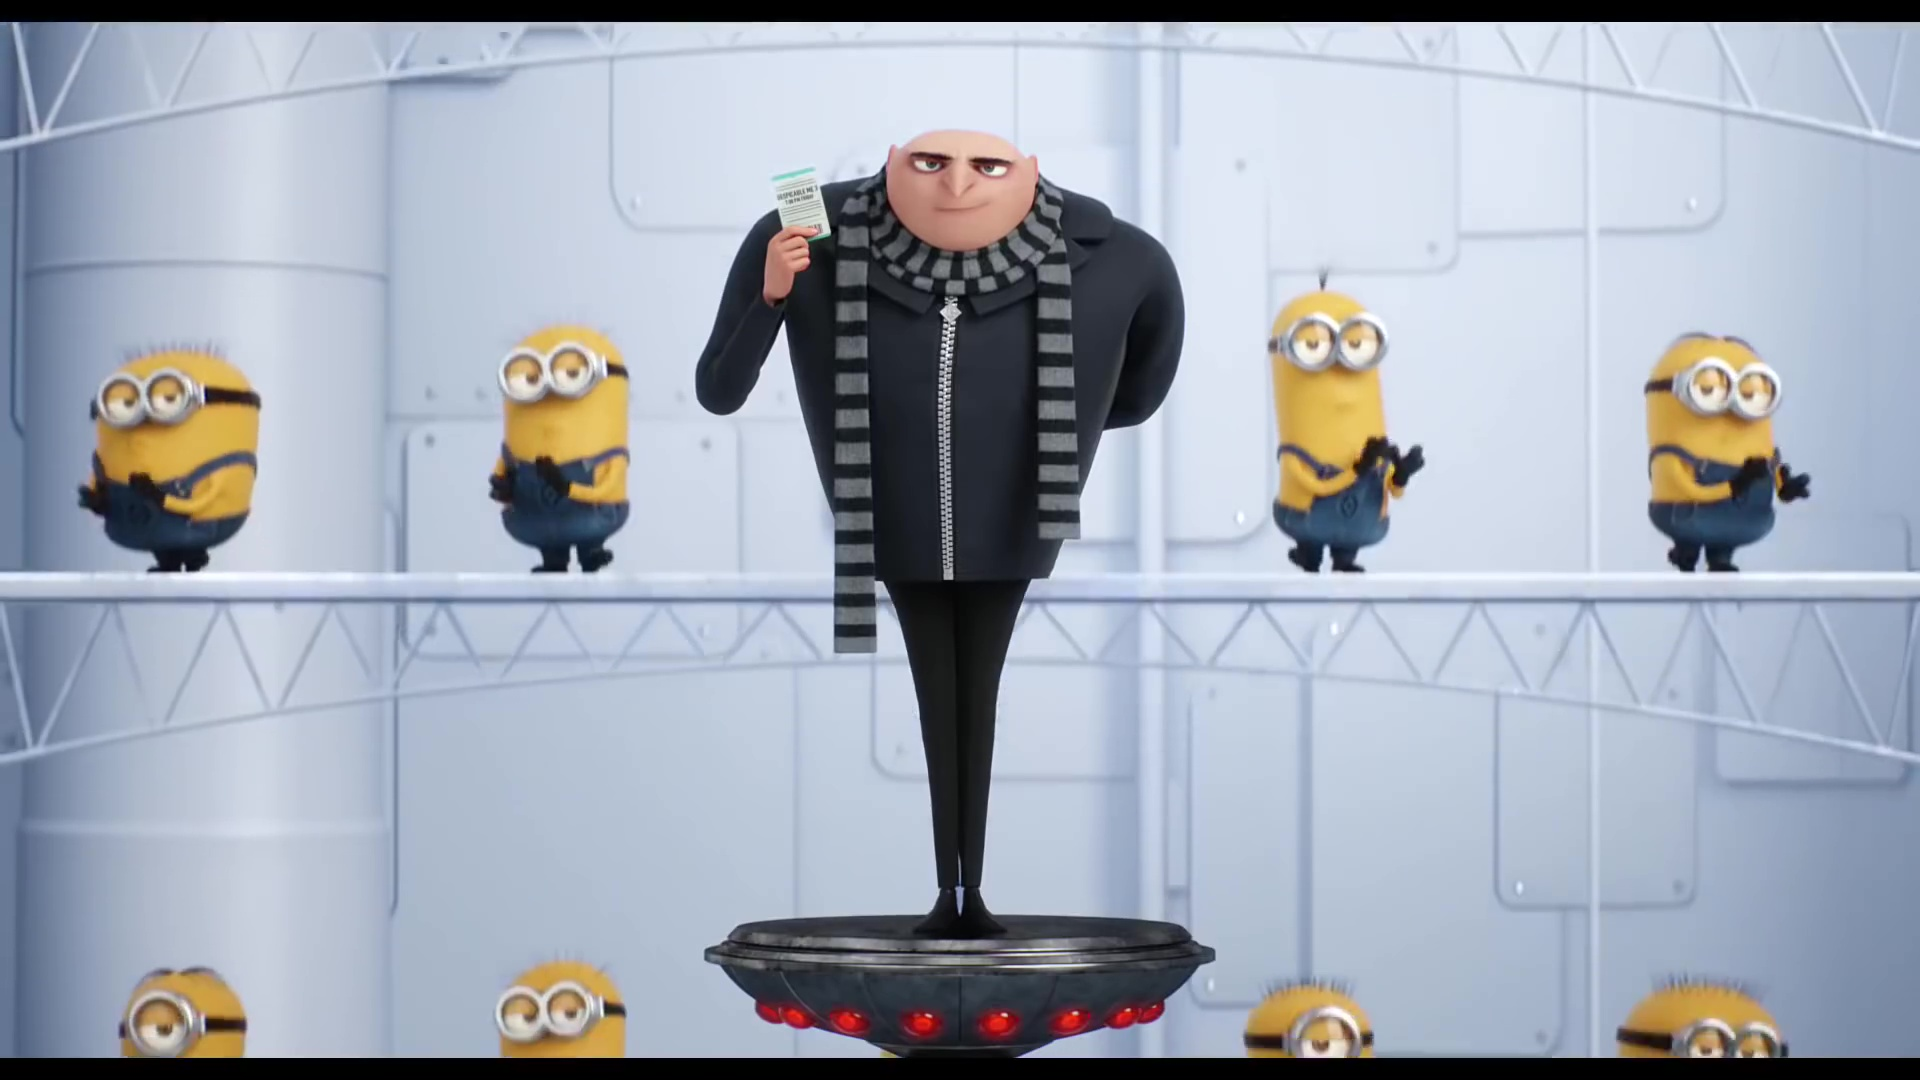 Despicable Me 3 Movie I Can Make Your Hands Clap Teaser Trailer Know i can make your hands clap said i can make your hands clap every night when the stars come out am i the only living soul around? i can make your hands clap